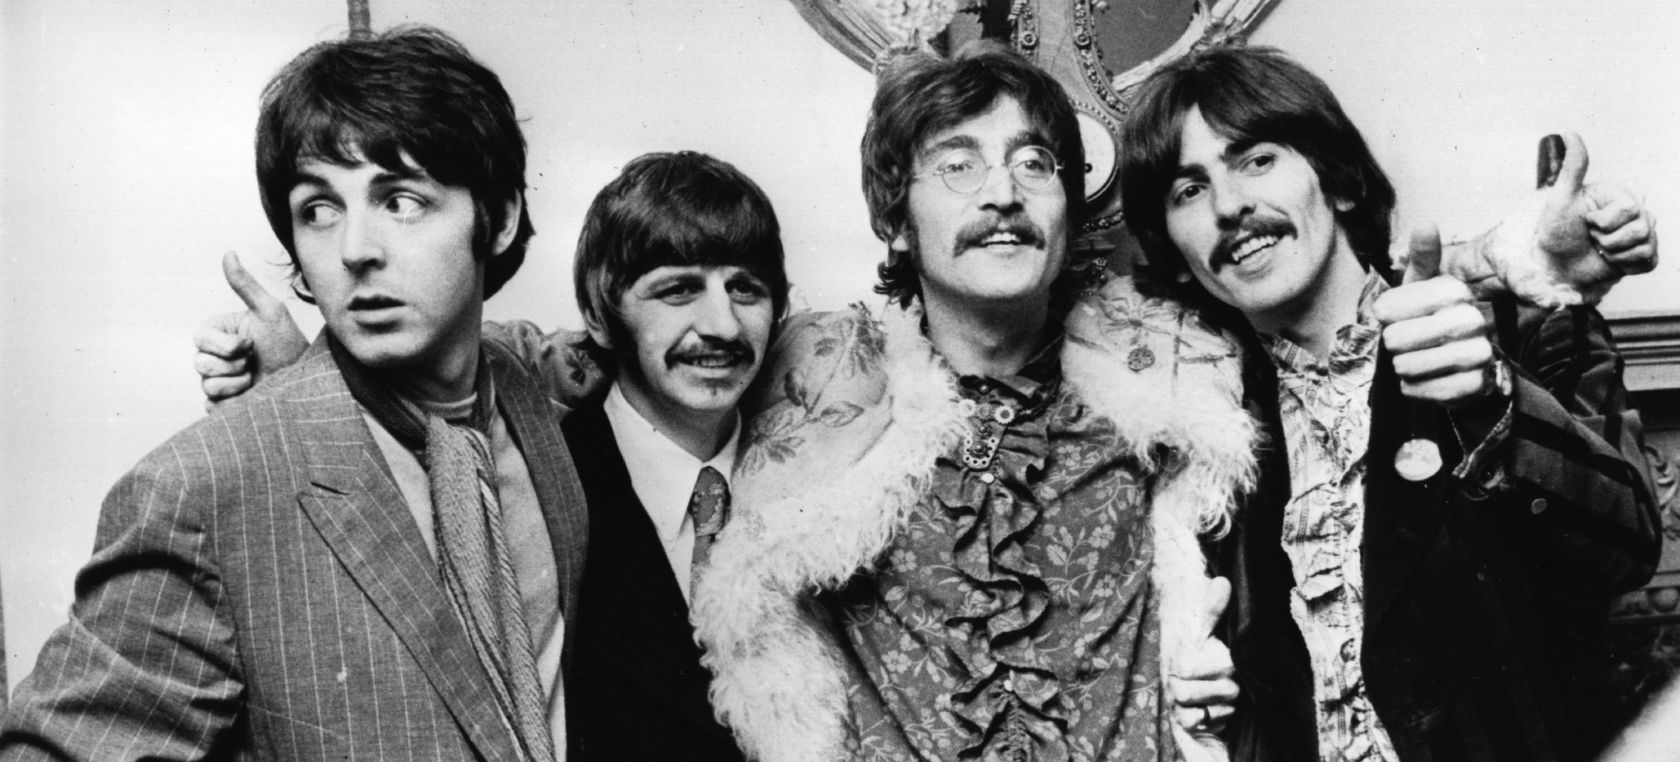 Los Beatles presentan su álbum 'Sgt Pepper's Lonely Hearts Club Band'